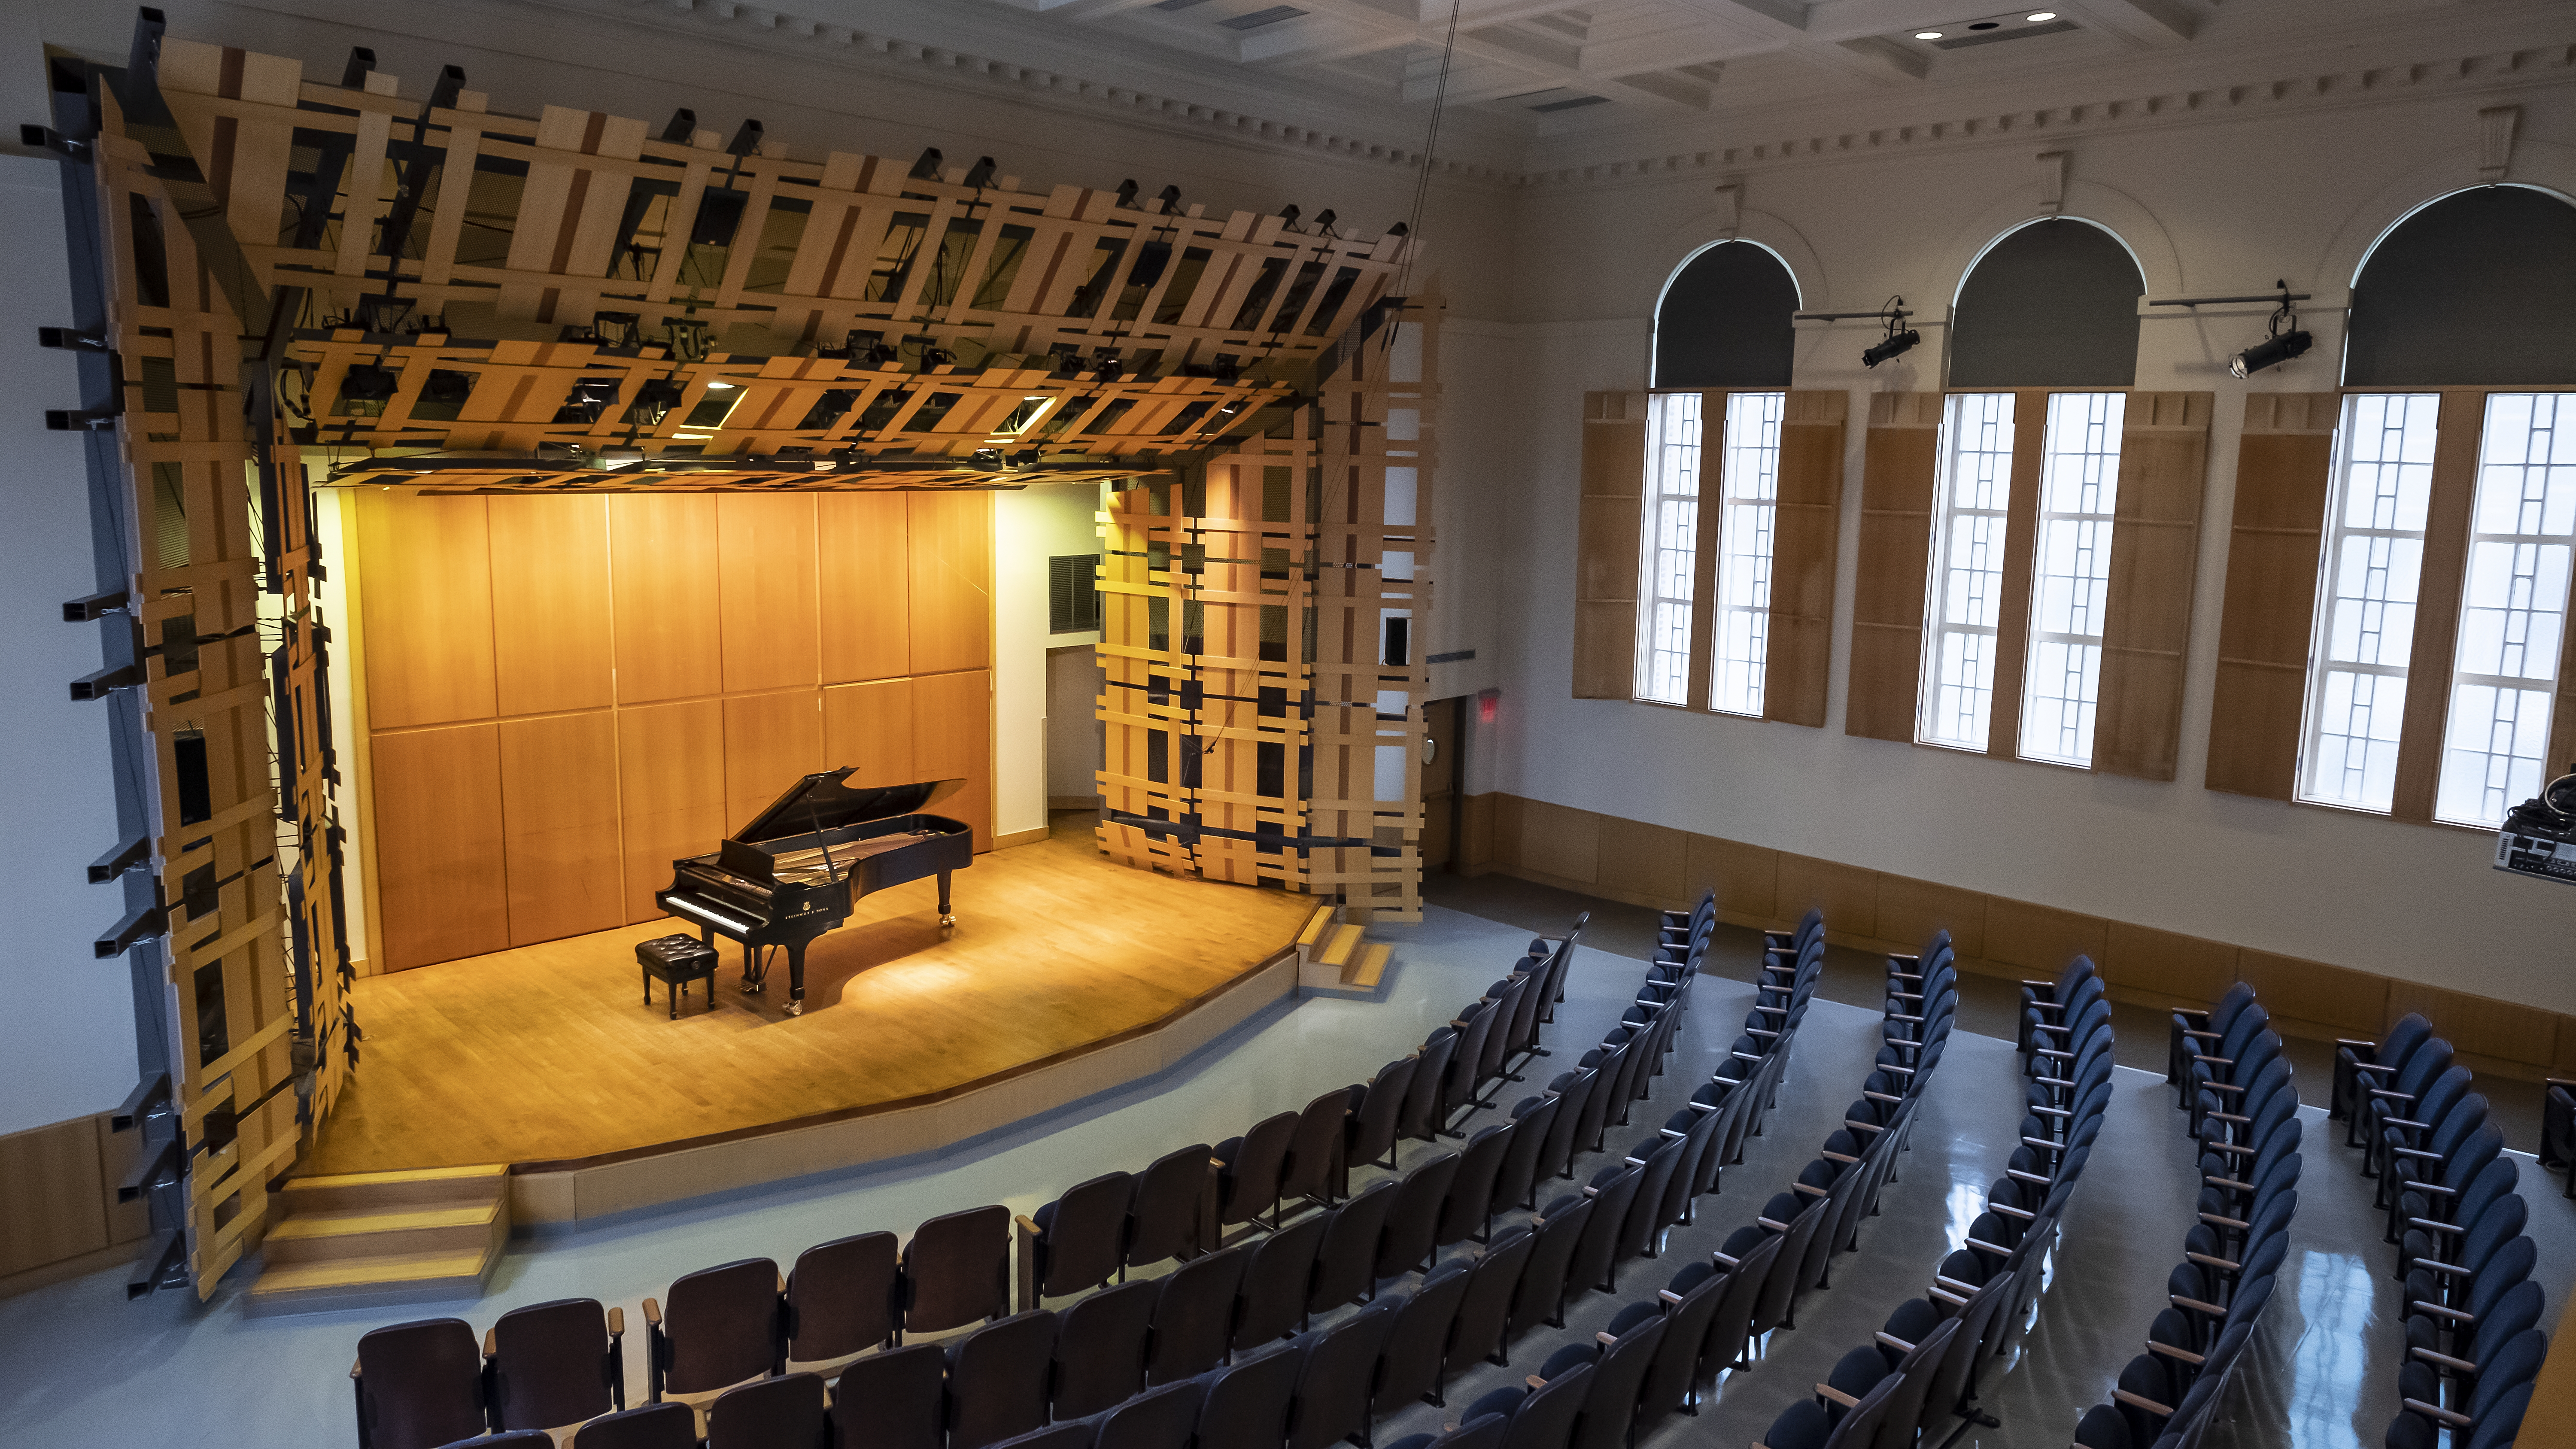 Photo of auditorium, seating and stage with grand piano, from corner balcony view